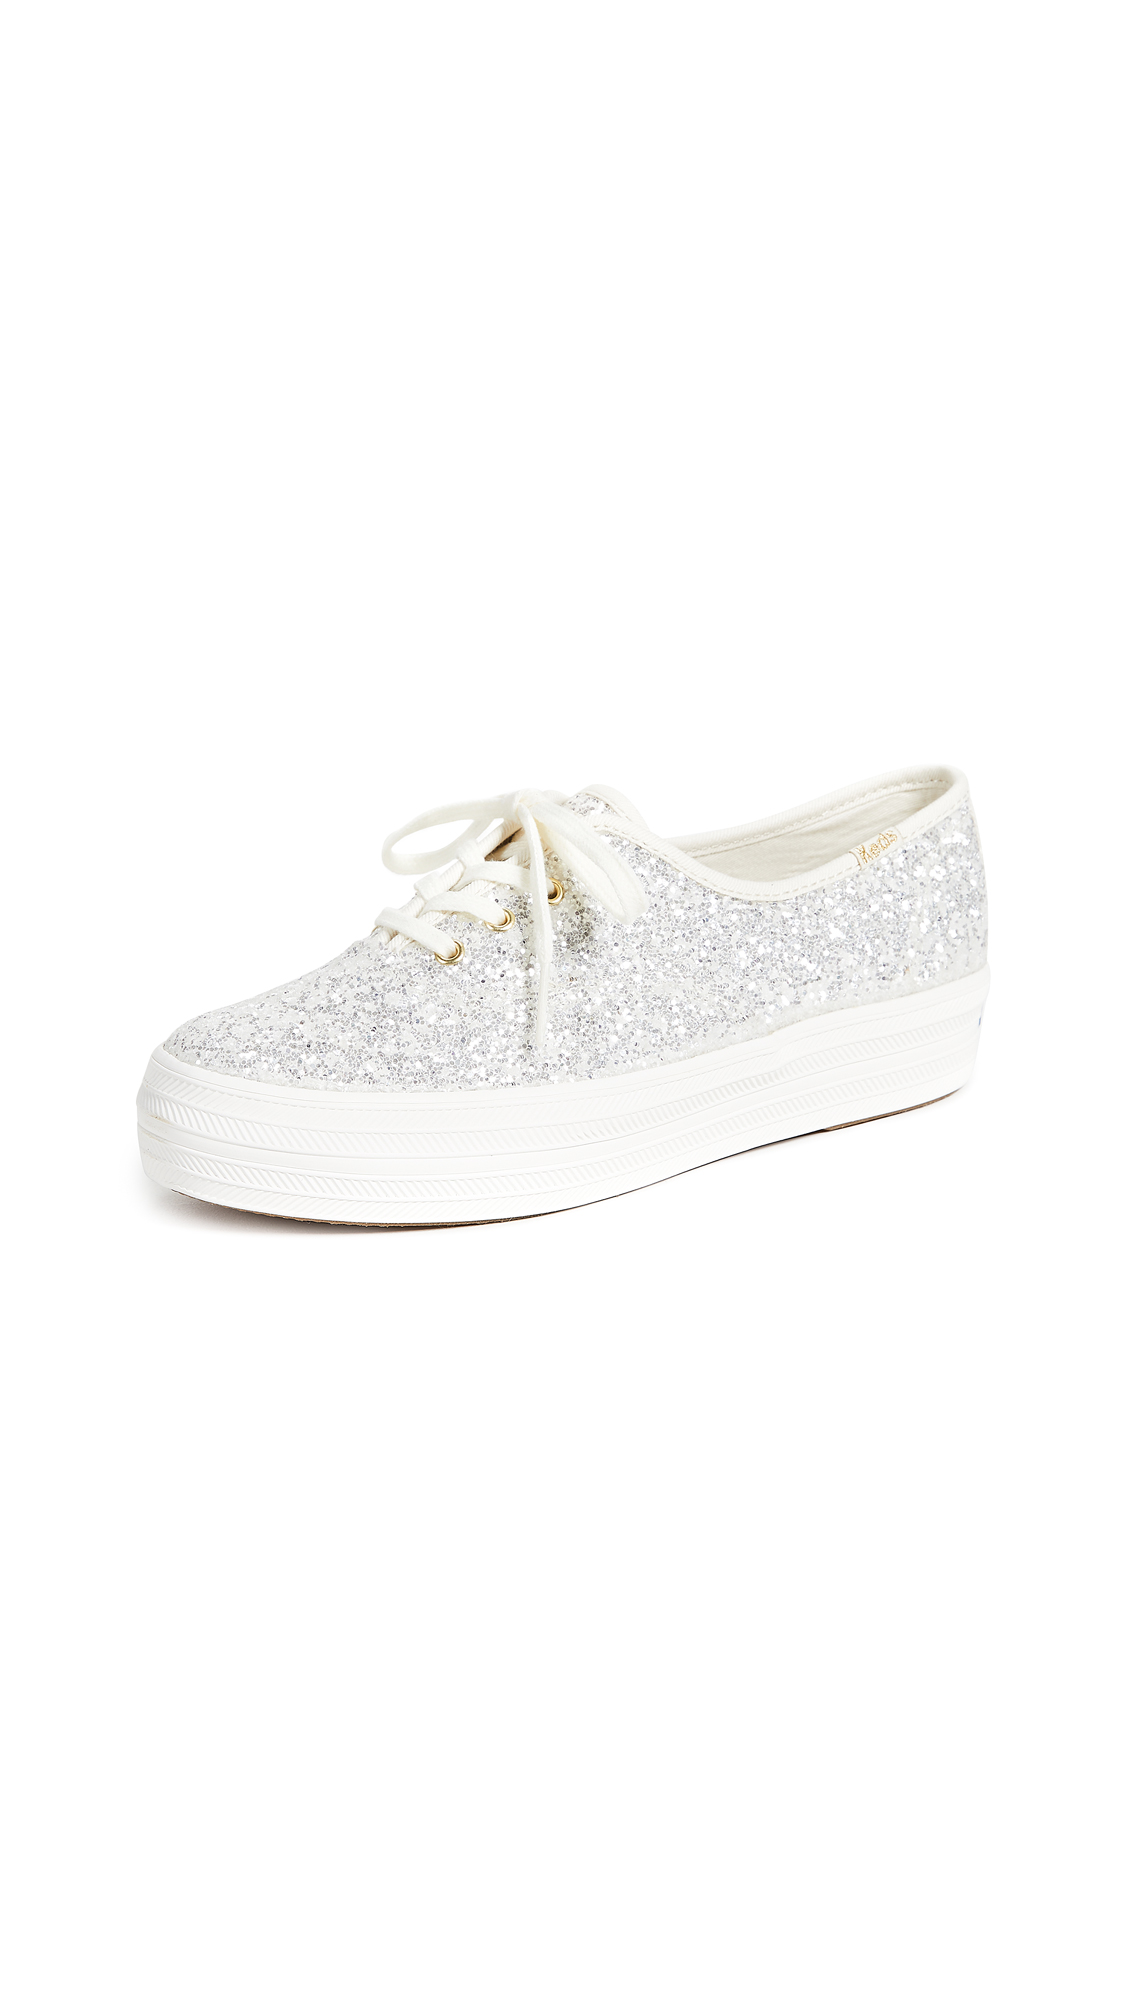 Keds x Kate Spade New York Triple Sneakers - Cream